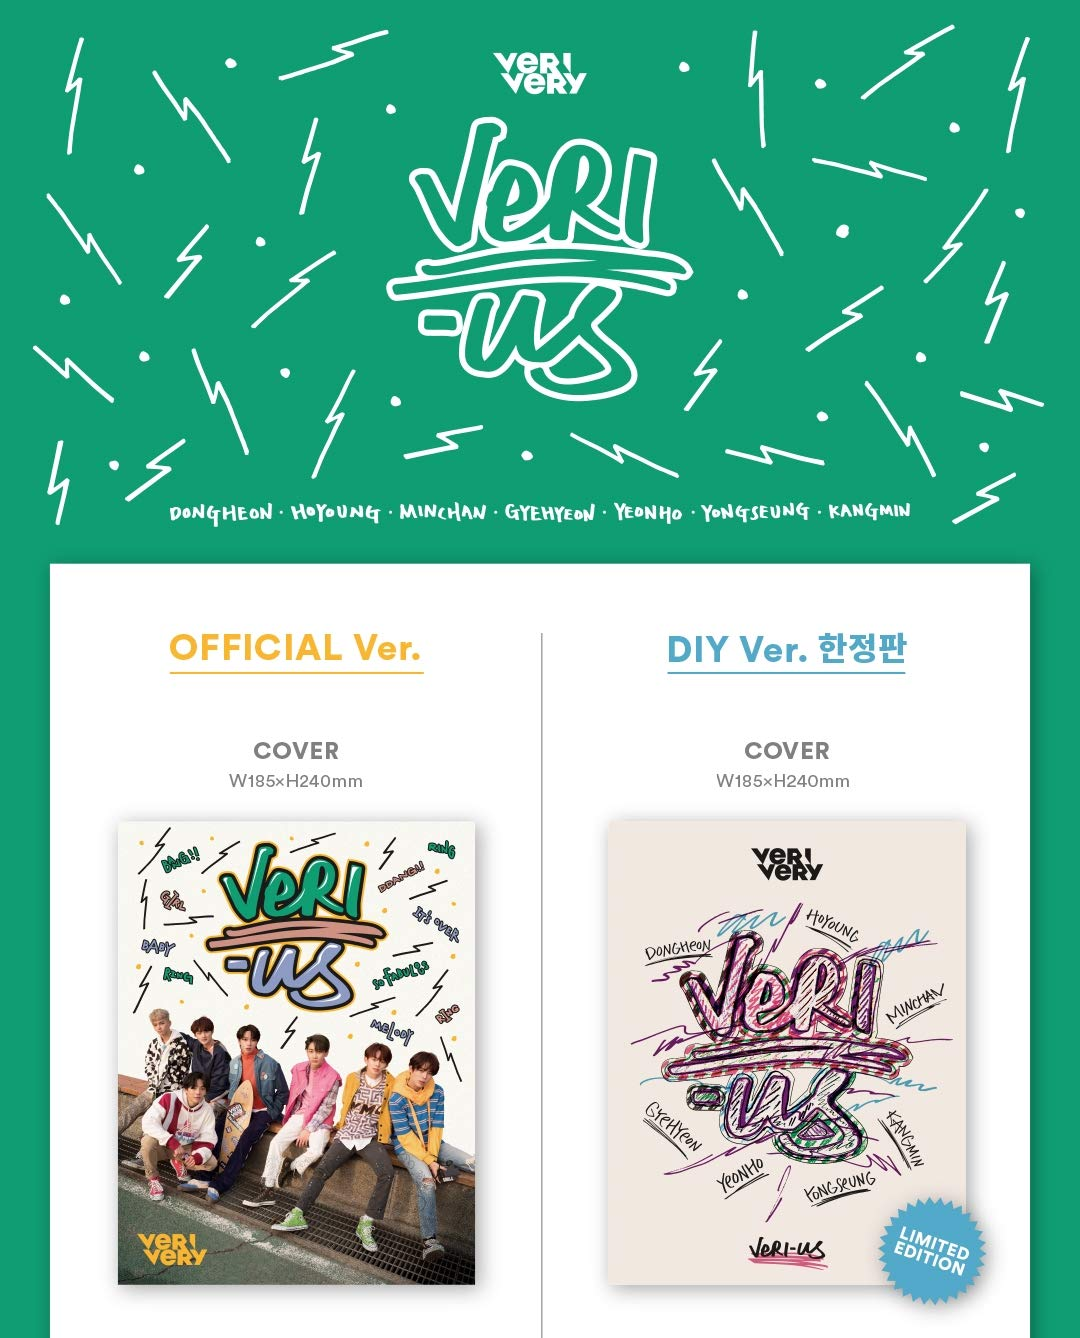 VERI-US 1st Mini Album Jellyfish Entertainent VERIVERY CD+2Photocards+8Postcards+Folded Poster Official ver.